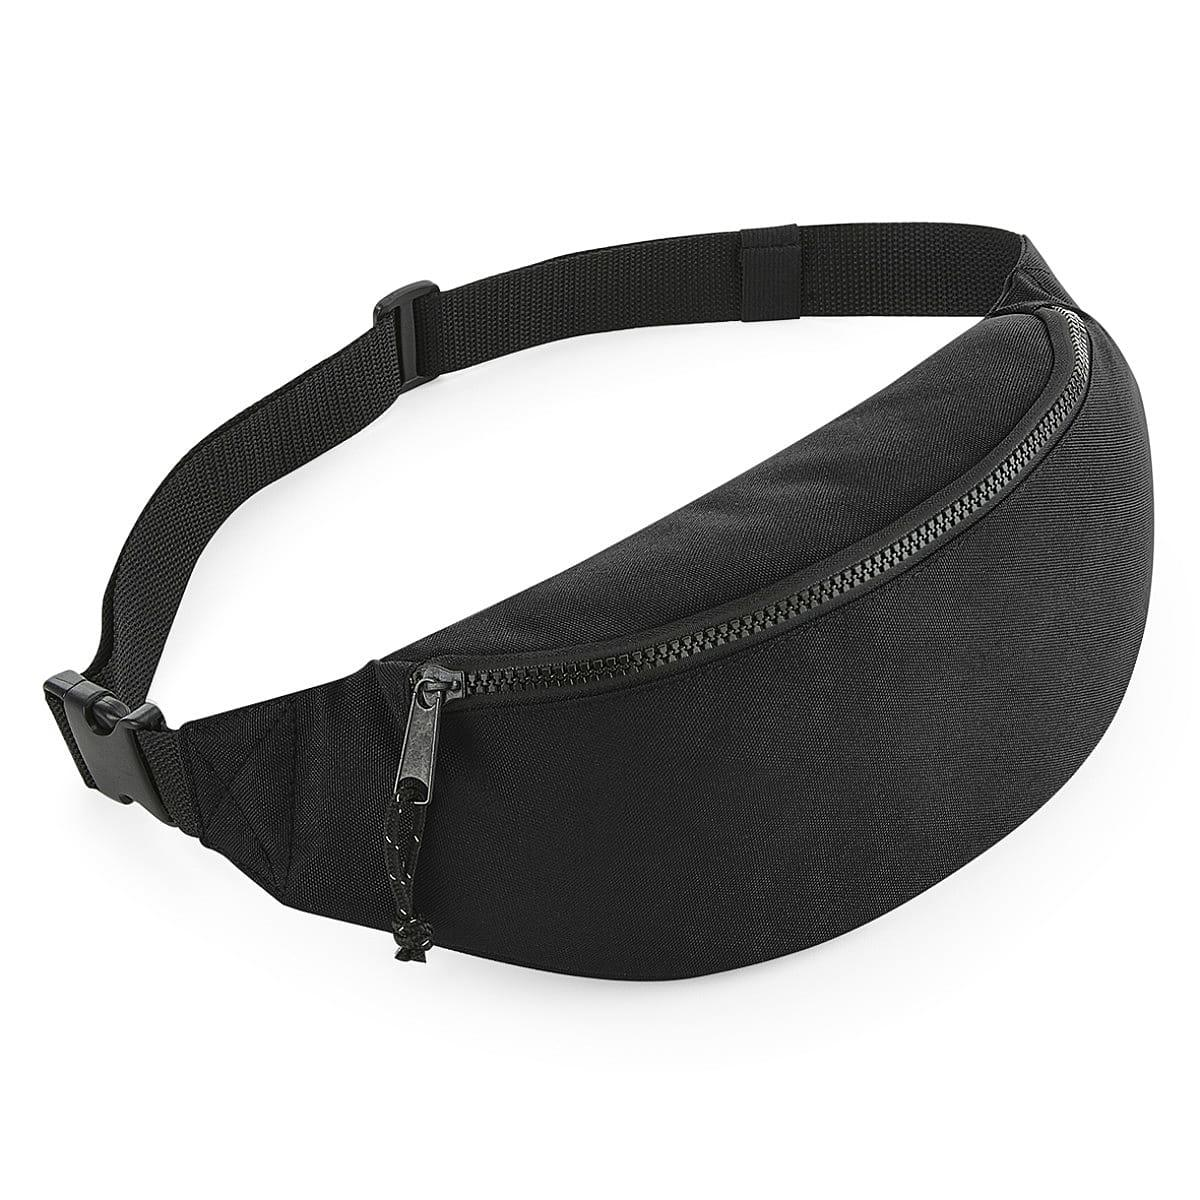 Bagbase Recycled Waistpack in Black (Product Code: BG282)